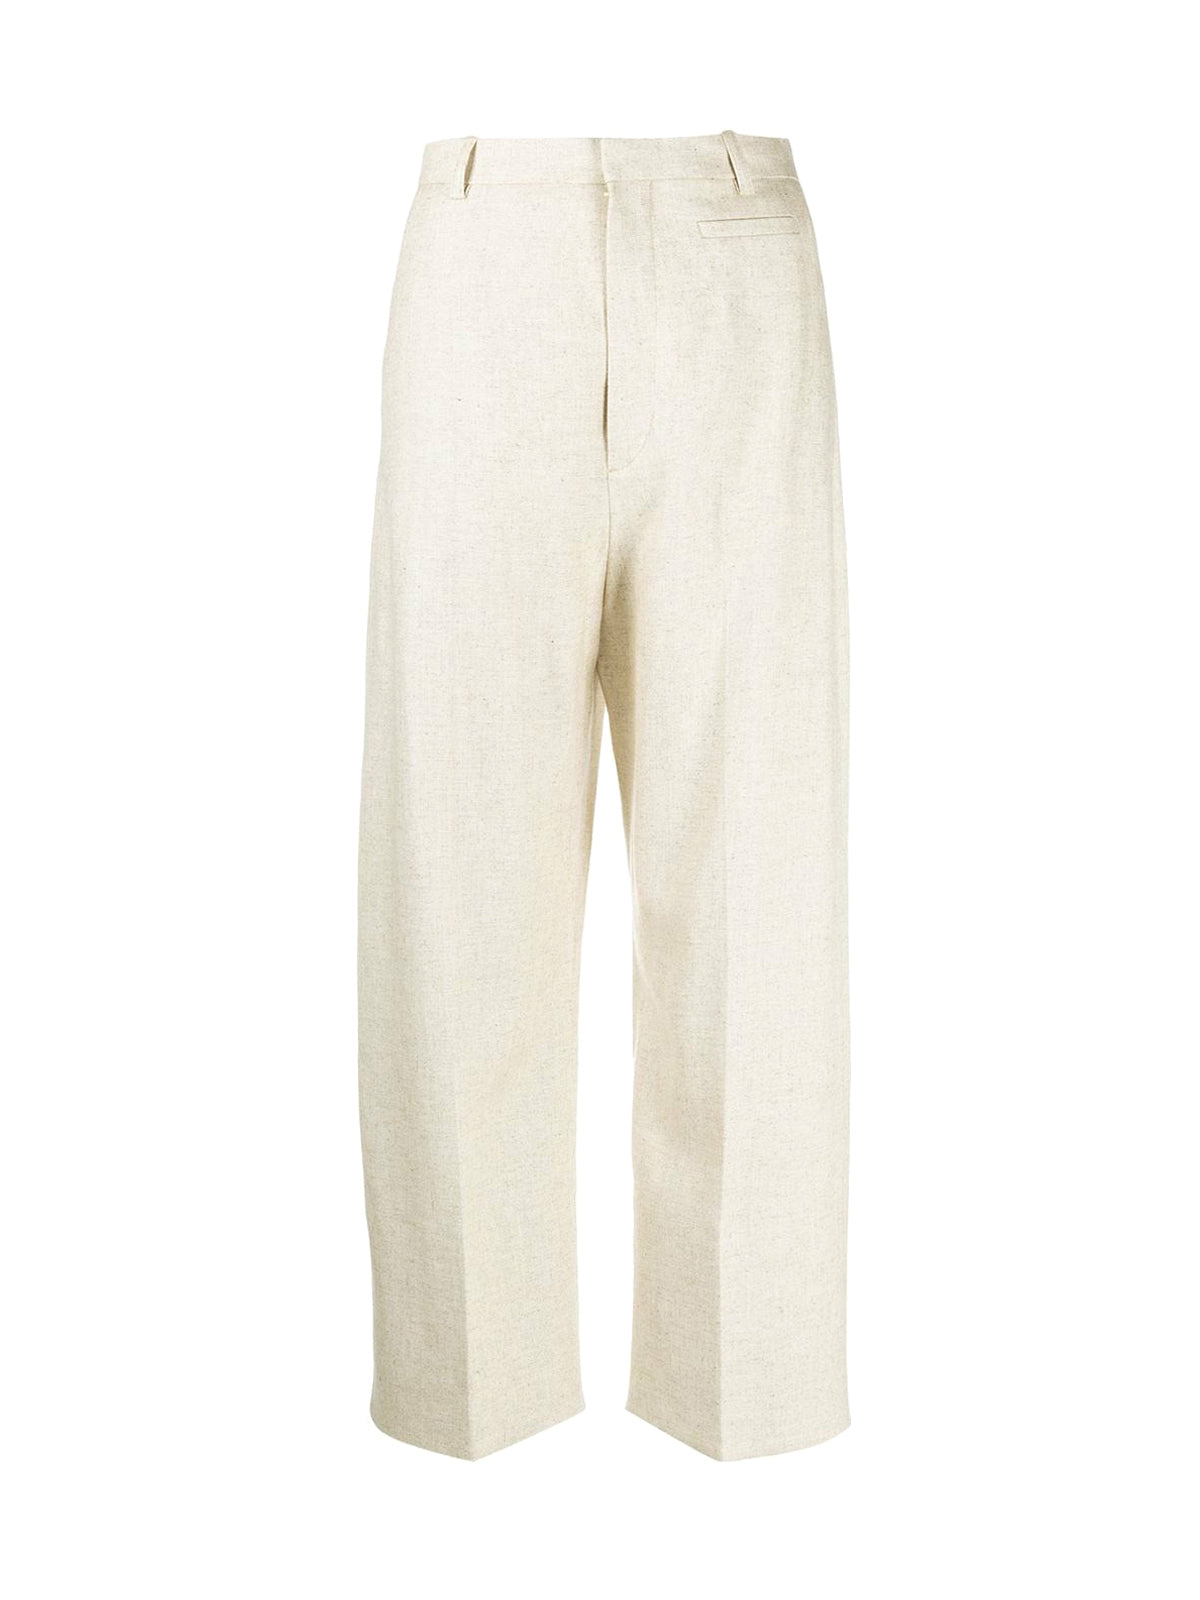 Le Pantalon Santon trousers